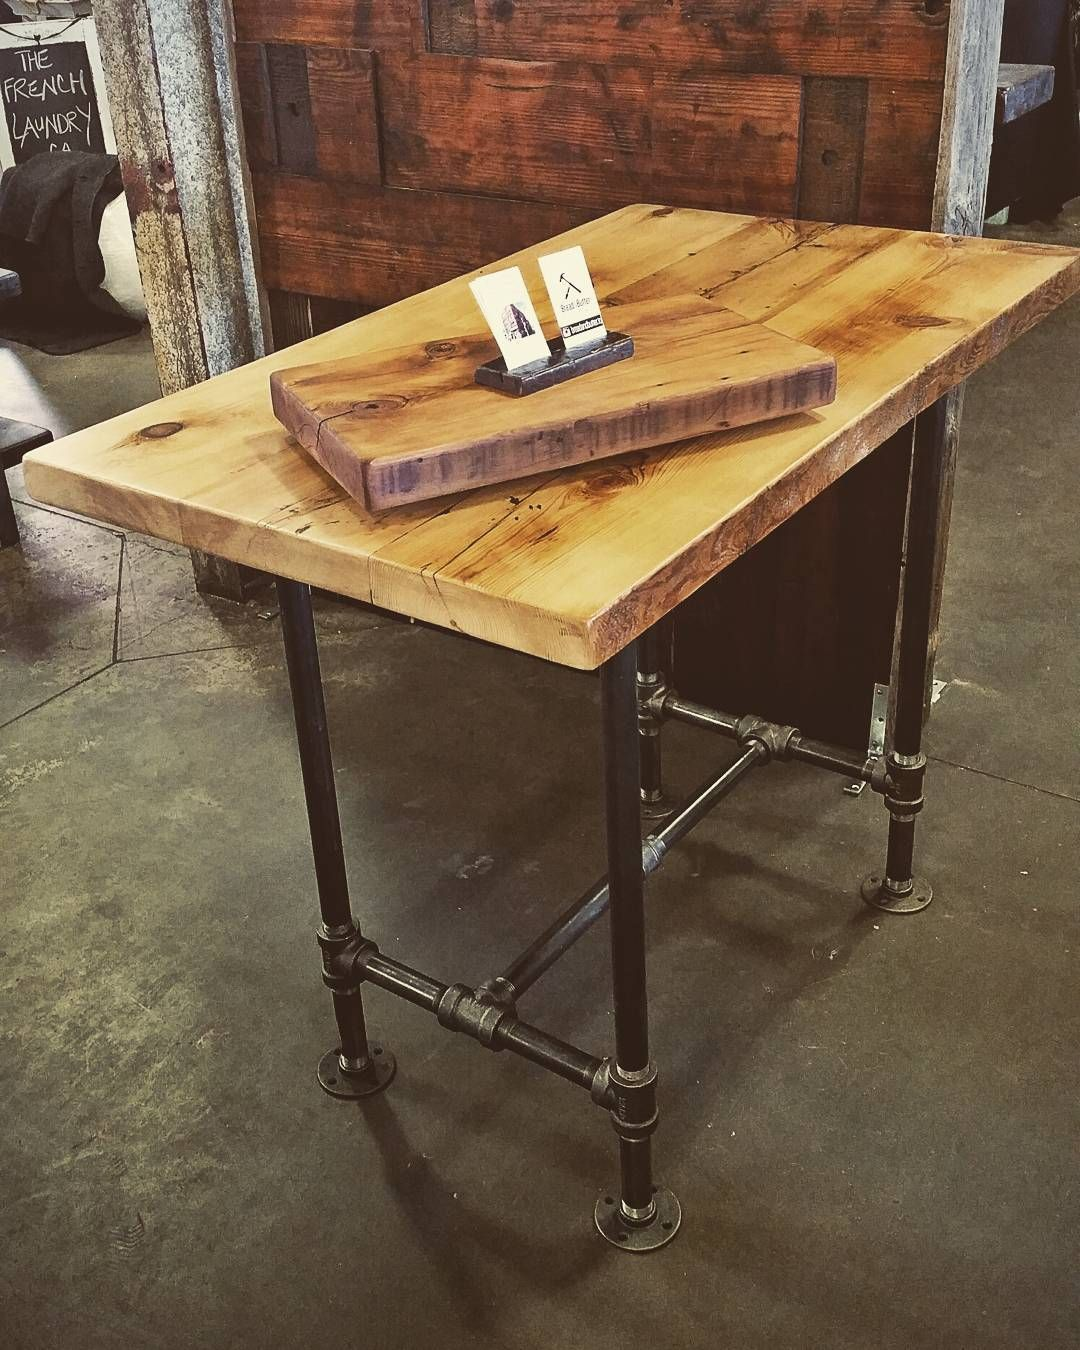 jillyswood adjustable condo harvest table or kitchen island. Easily ...